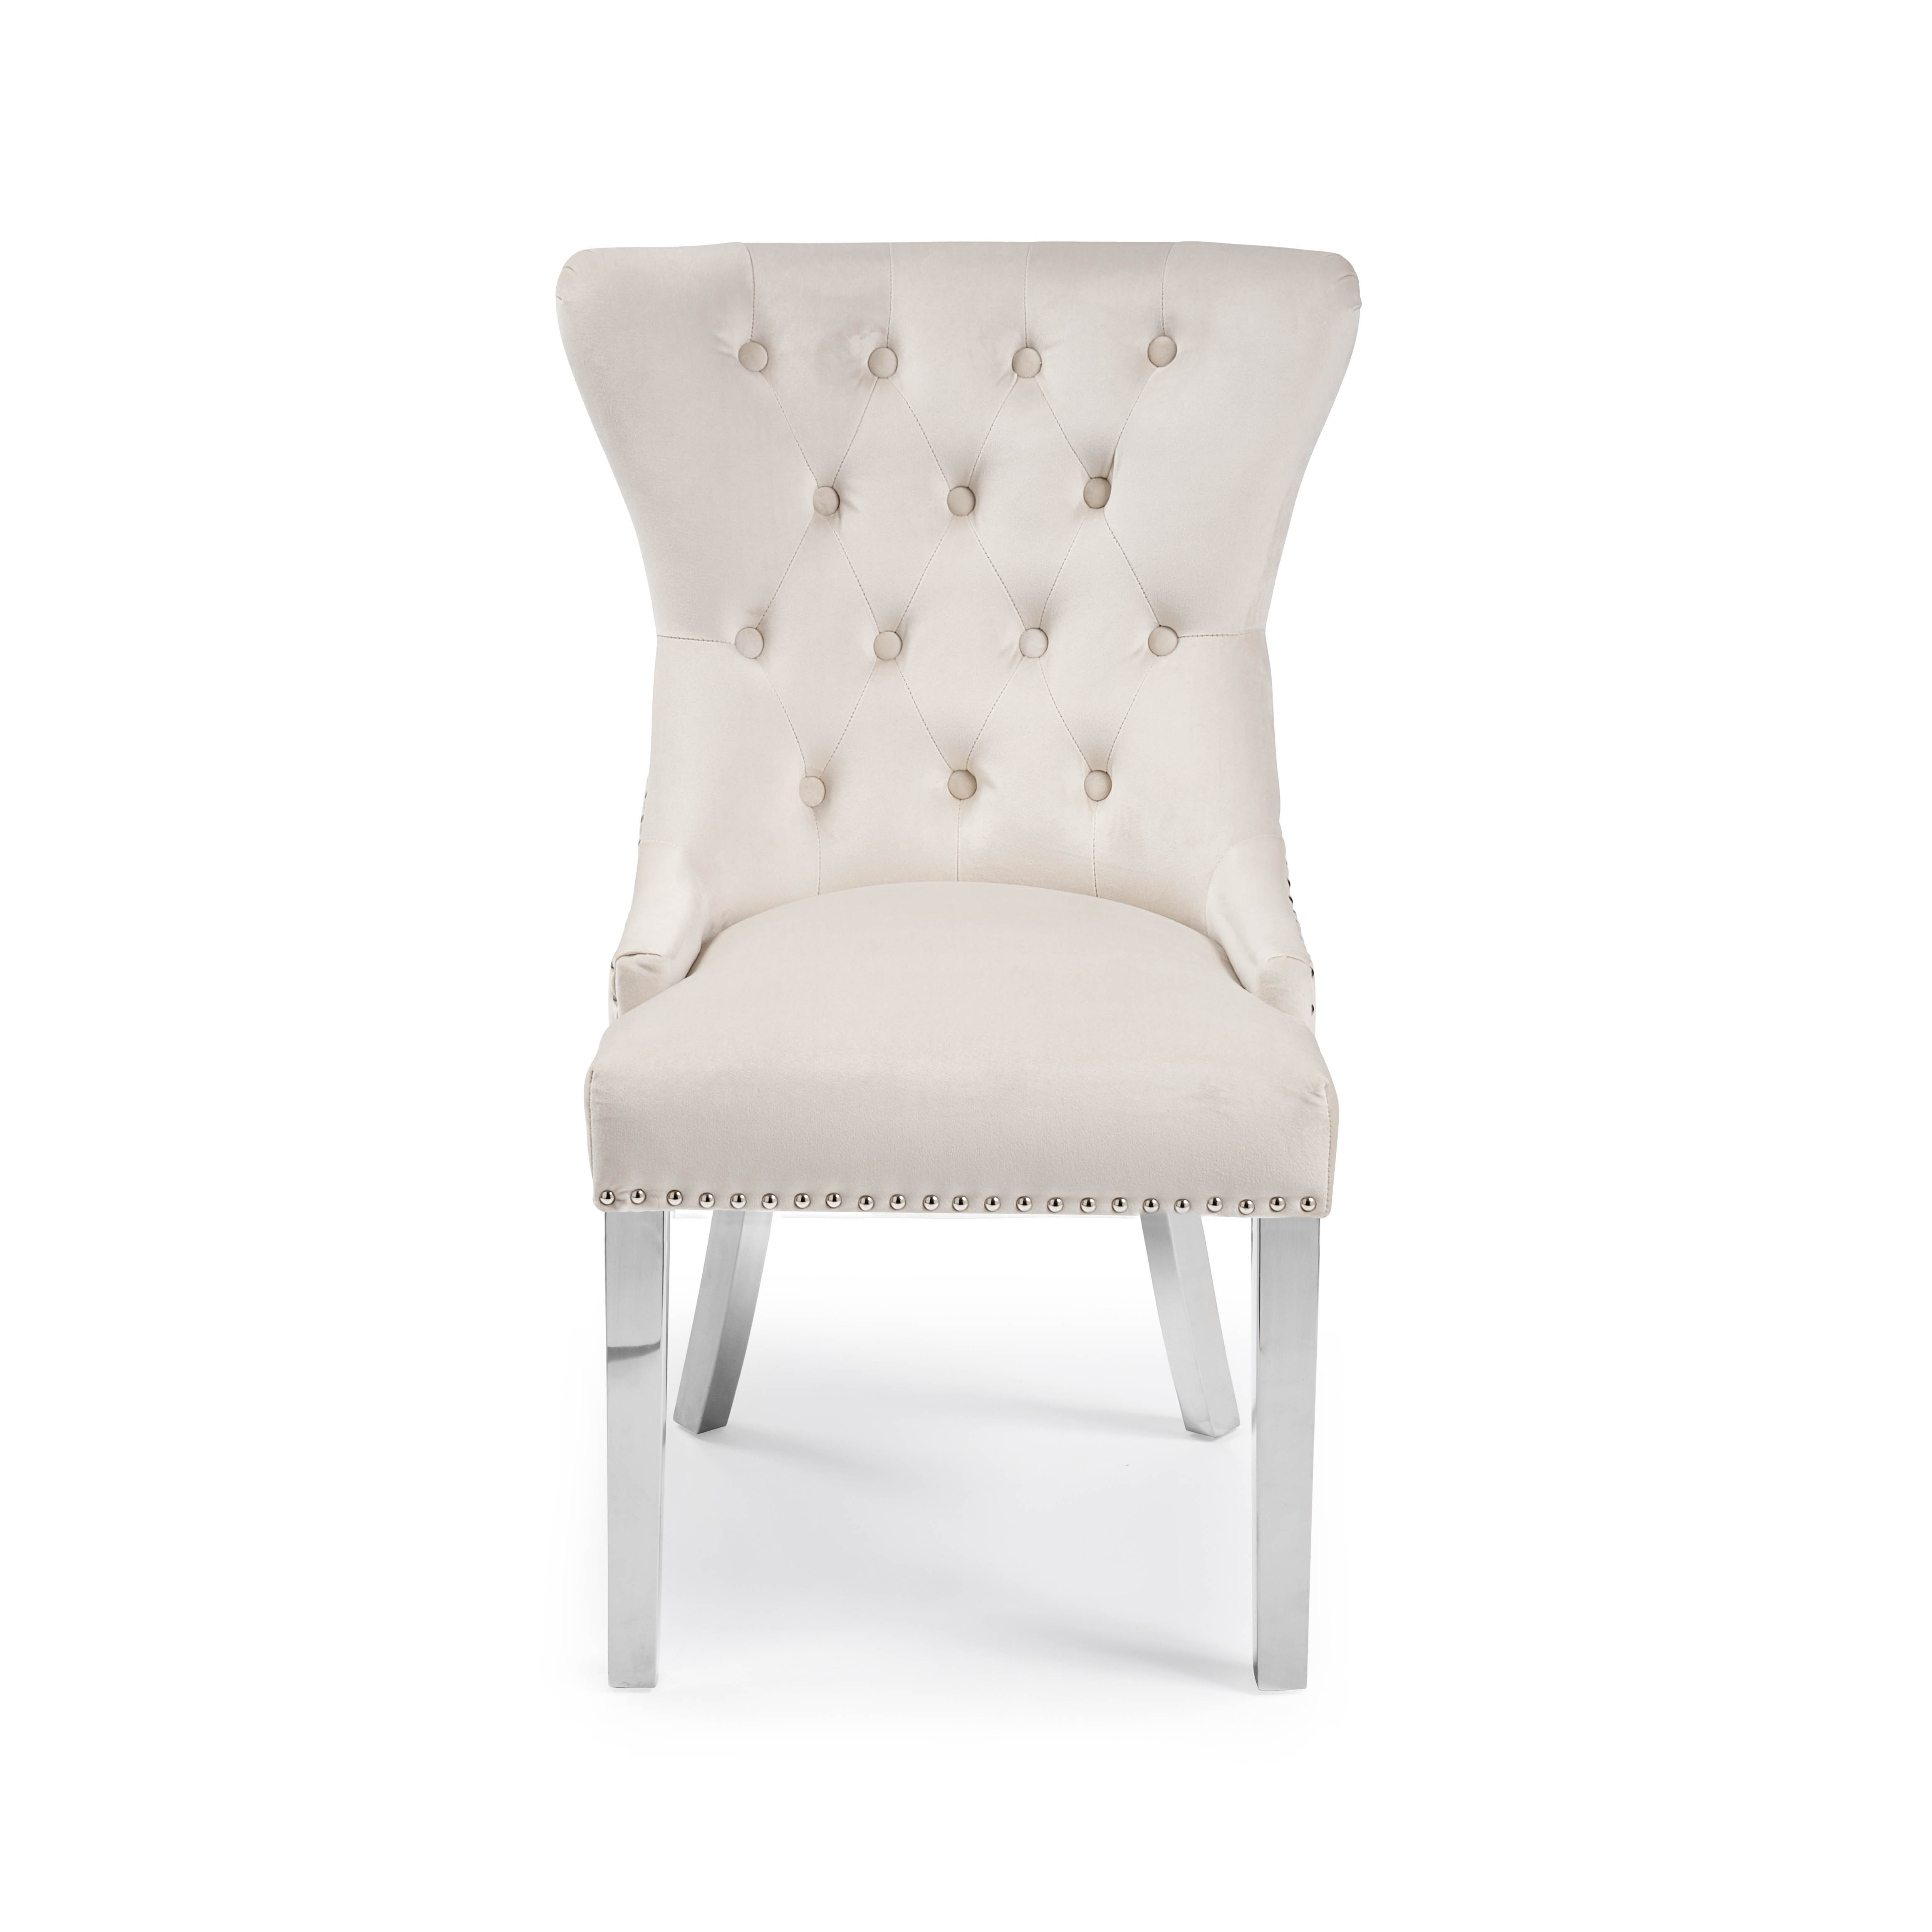 Knightsbridge Cream Brushed Velvet Dining Chair with Polished Steel Legs